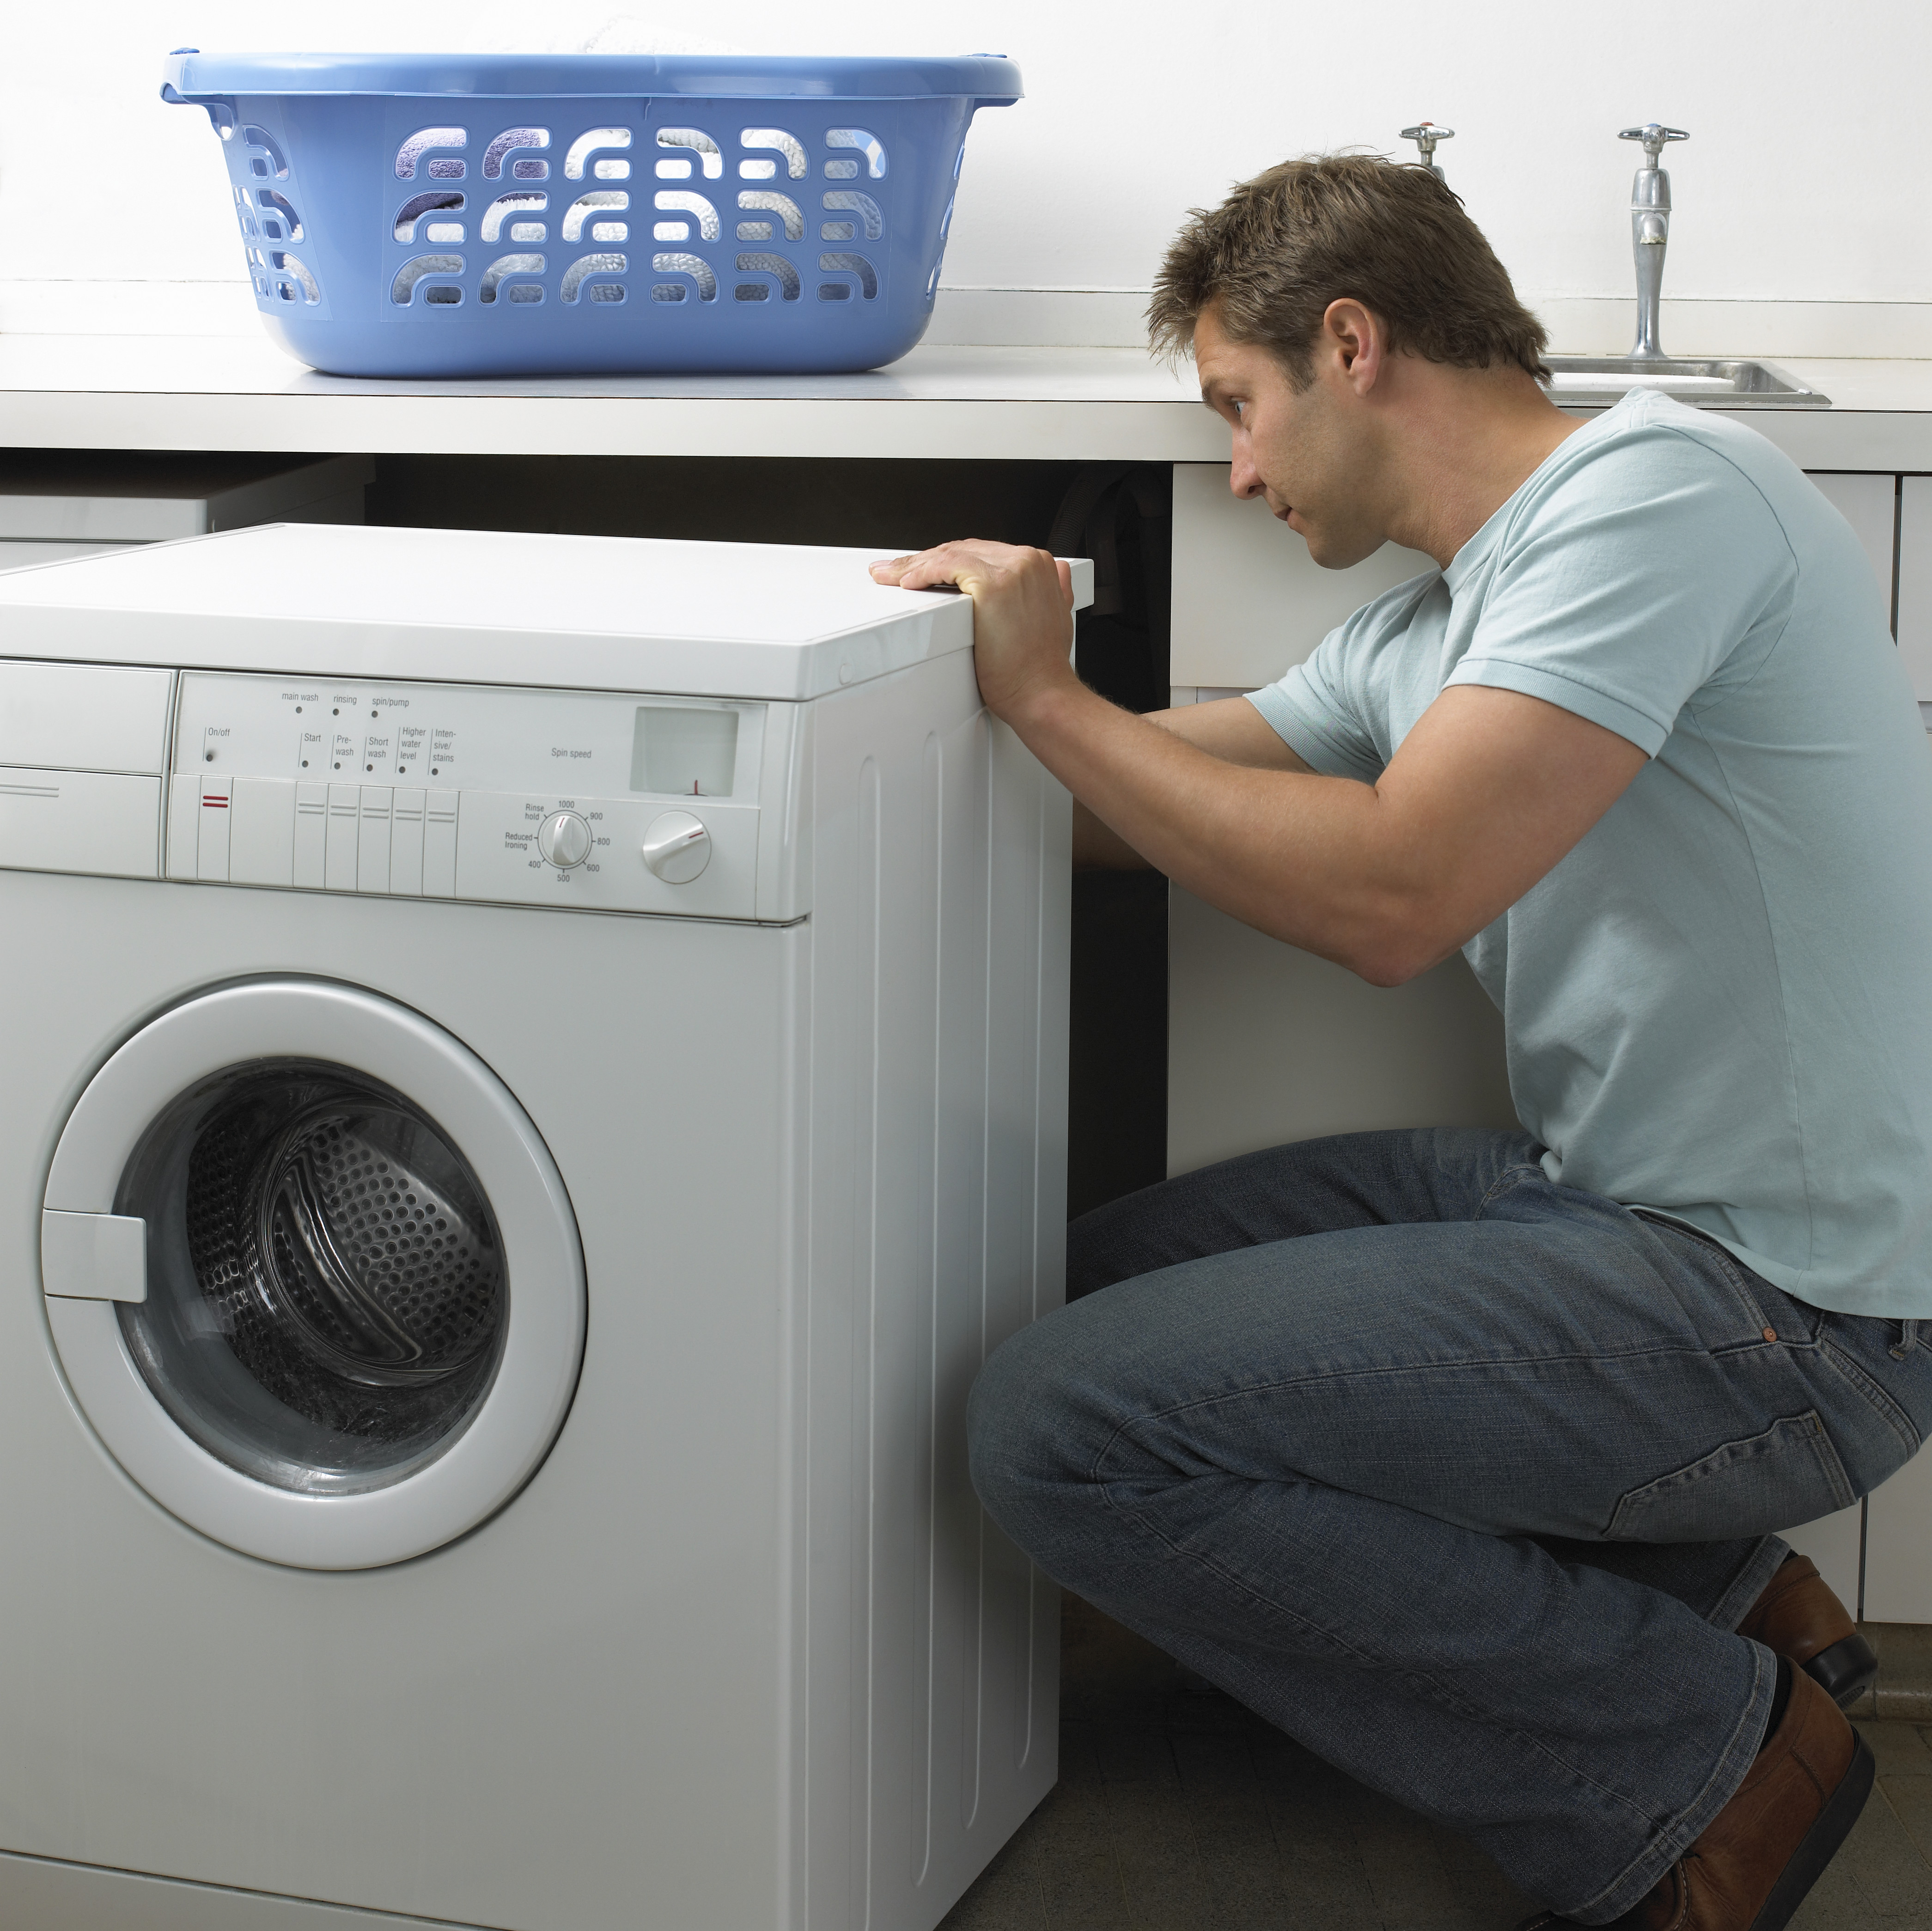 Troubleshooting Kenmore Washing Machine Errors | Hunker